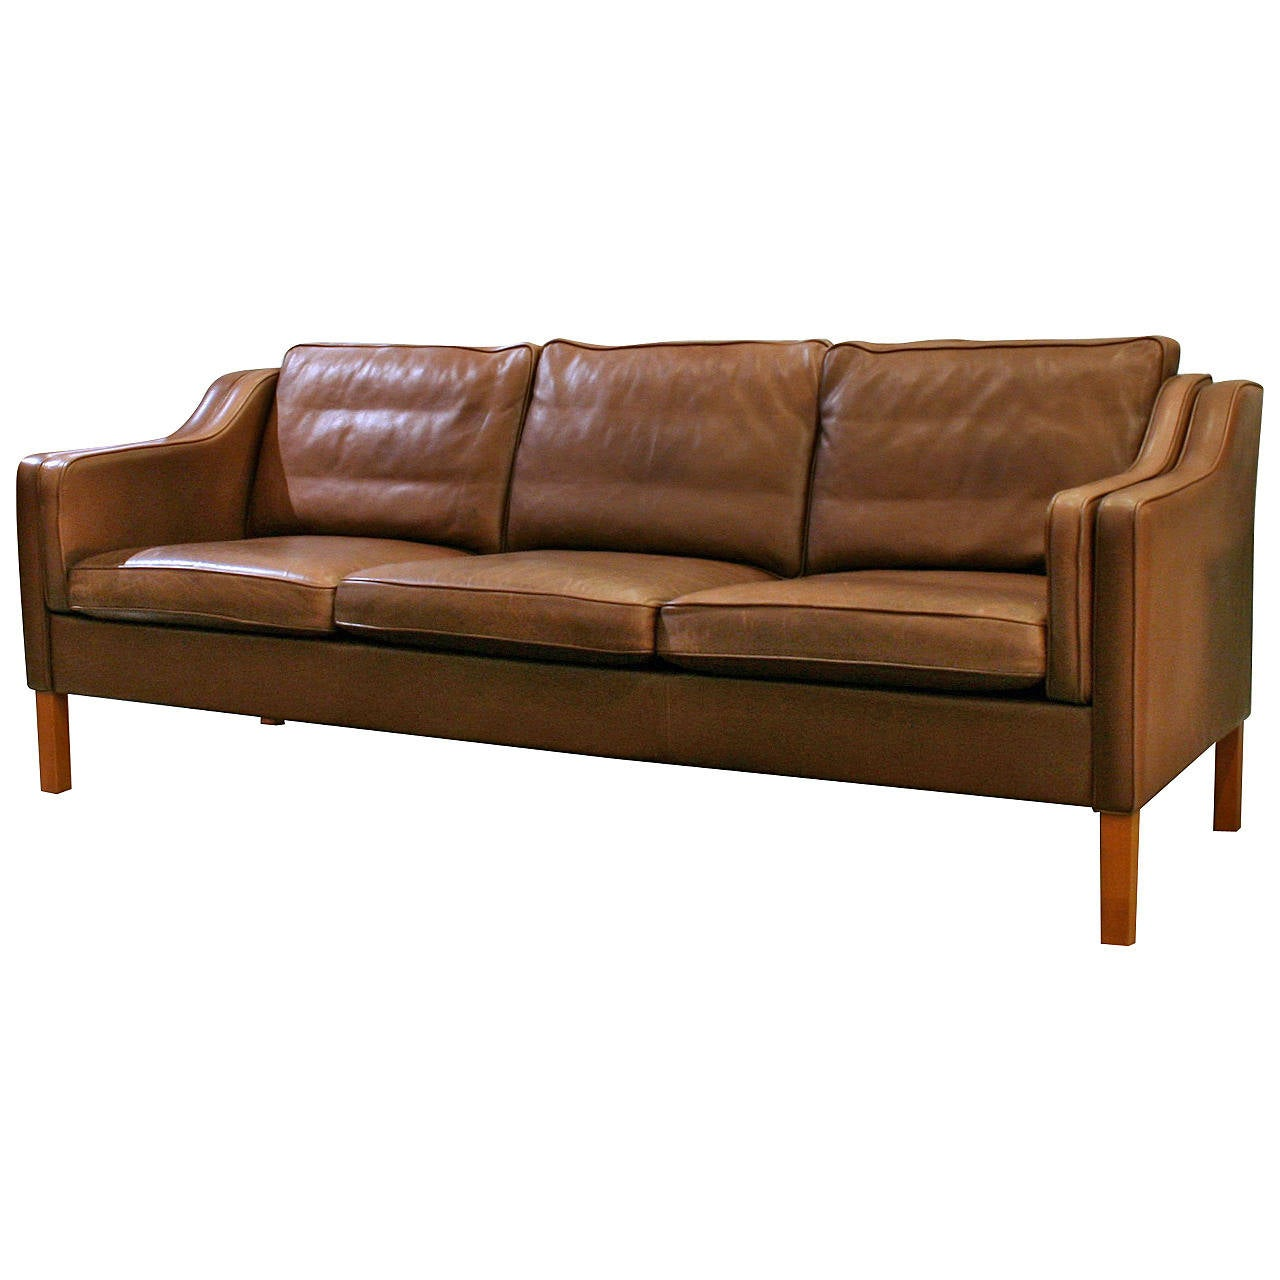 Vintage Danish Leather Sofa At 1stdibs